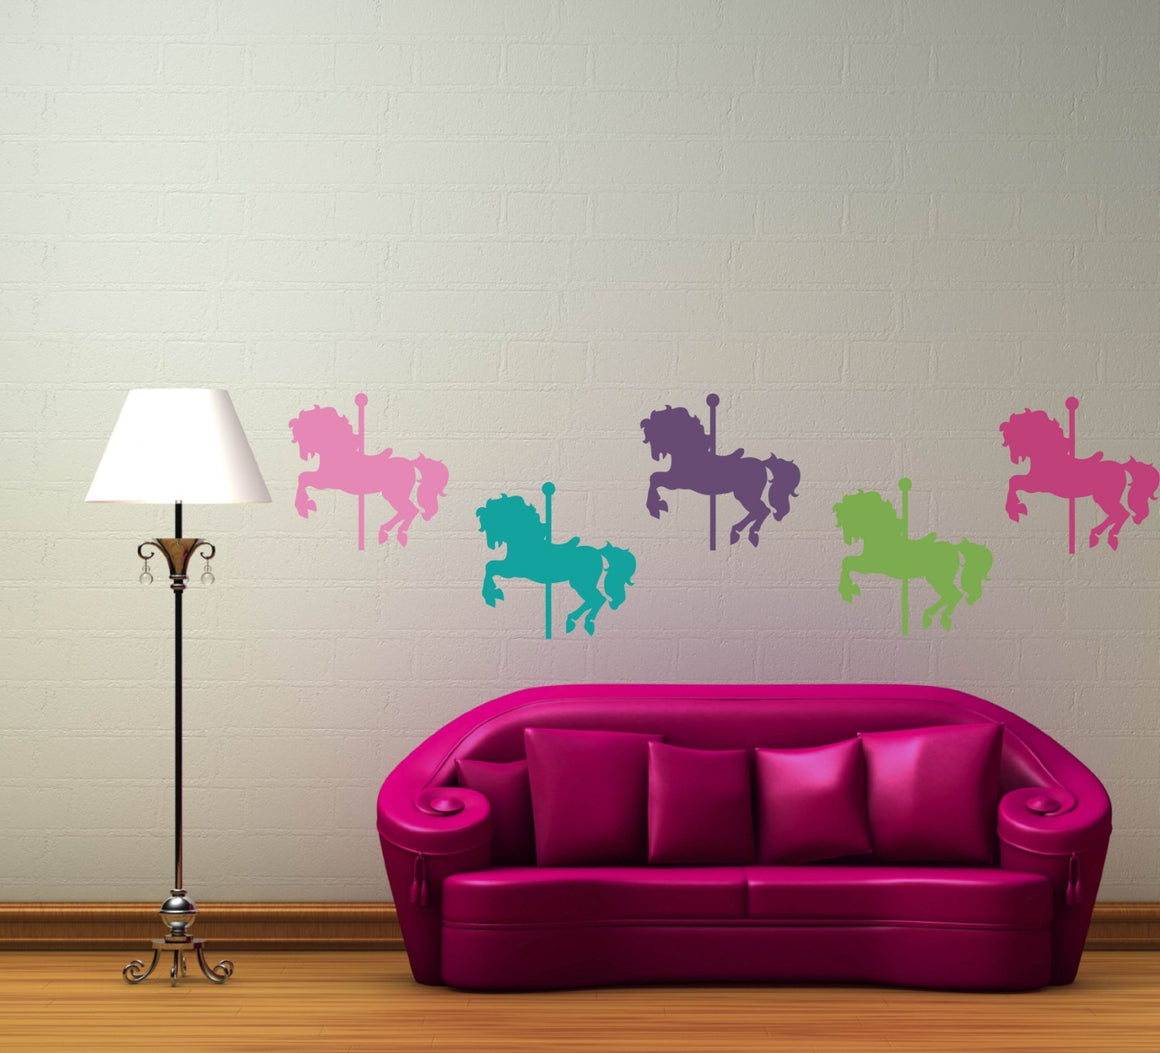 Carousel Horses Vinyl Wall Decal Set - Set of 5